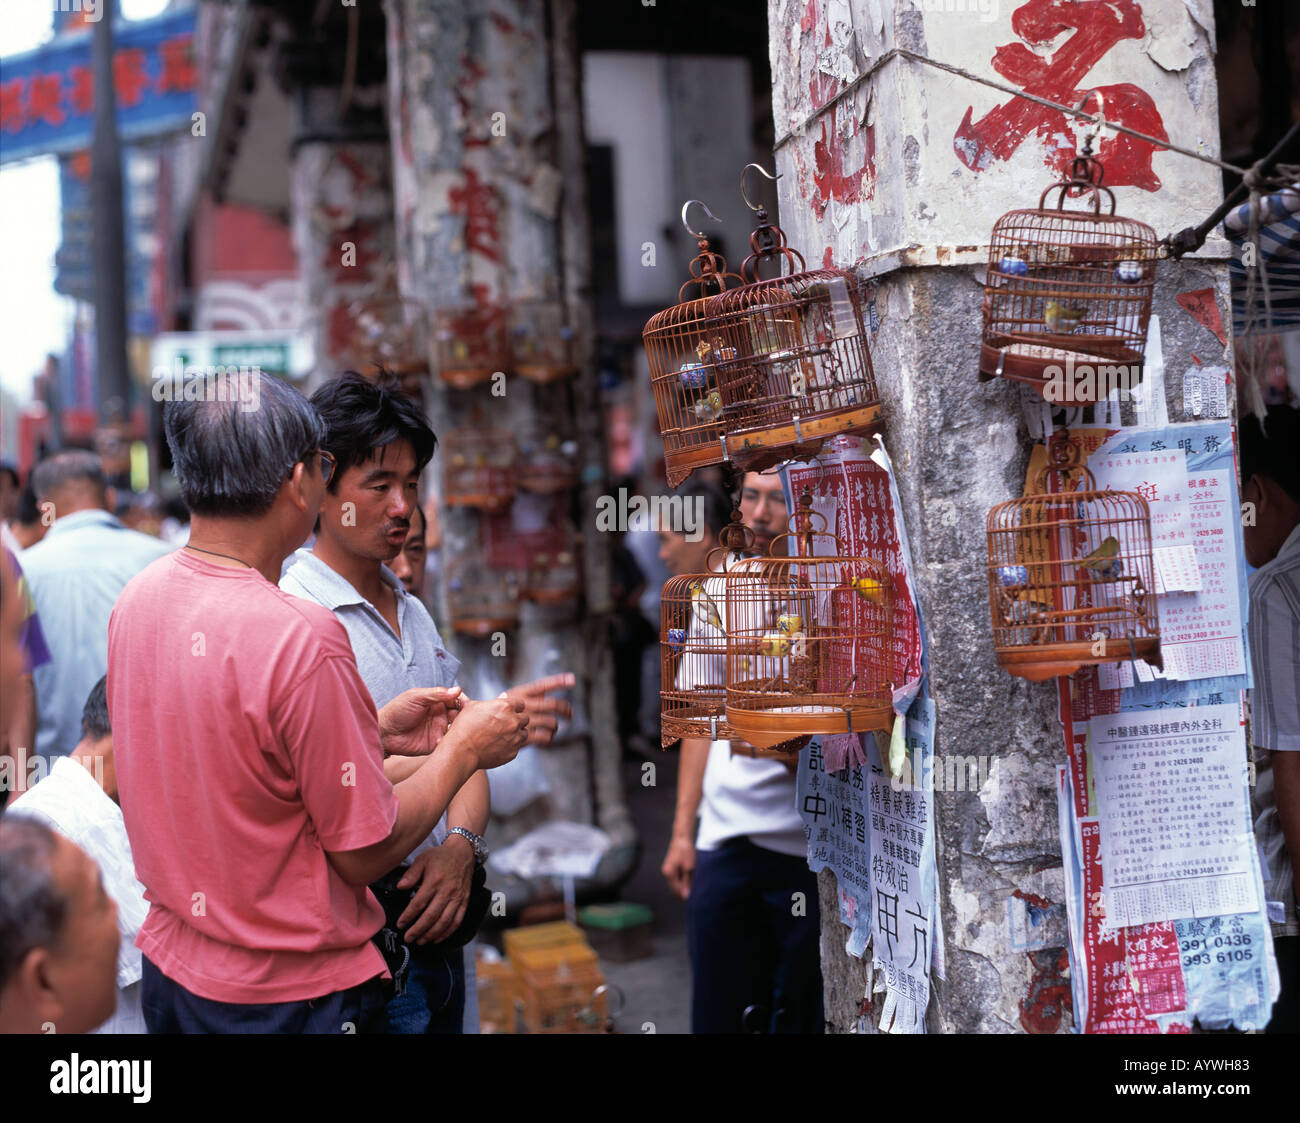 HK-Hong Kong, Kowloon, Bird Market Stock Photo